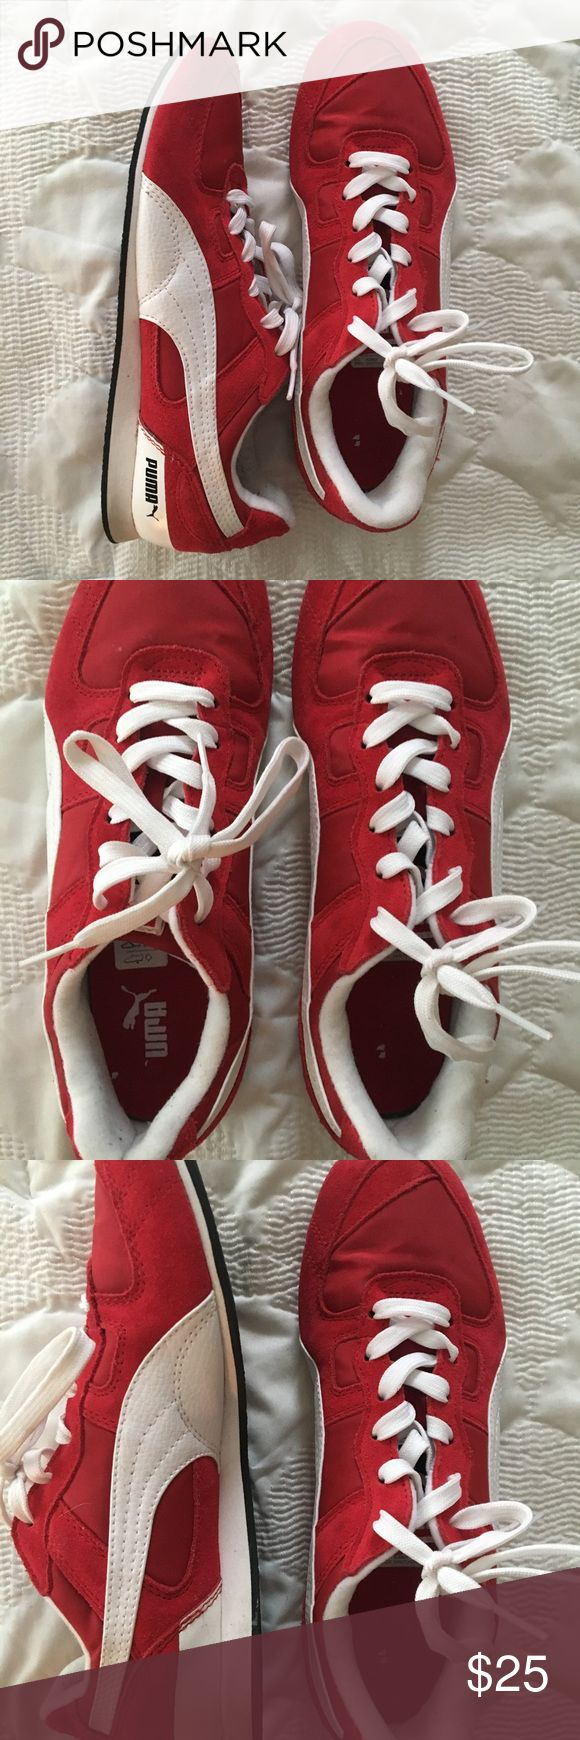 Vintage looking red puma tennis shoes! Brand new never worn! Unique looking!! Fits size 8 too! Puma Shoes Sneakers